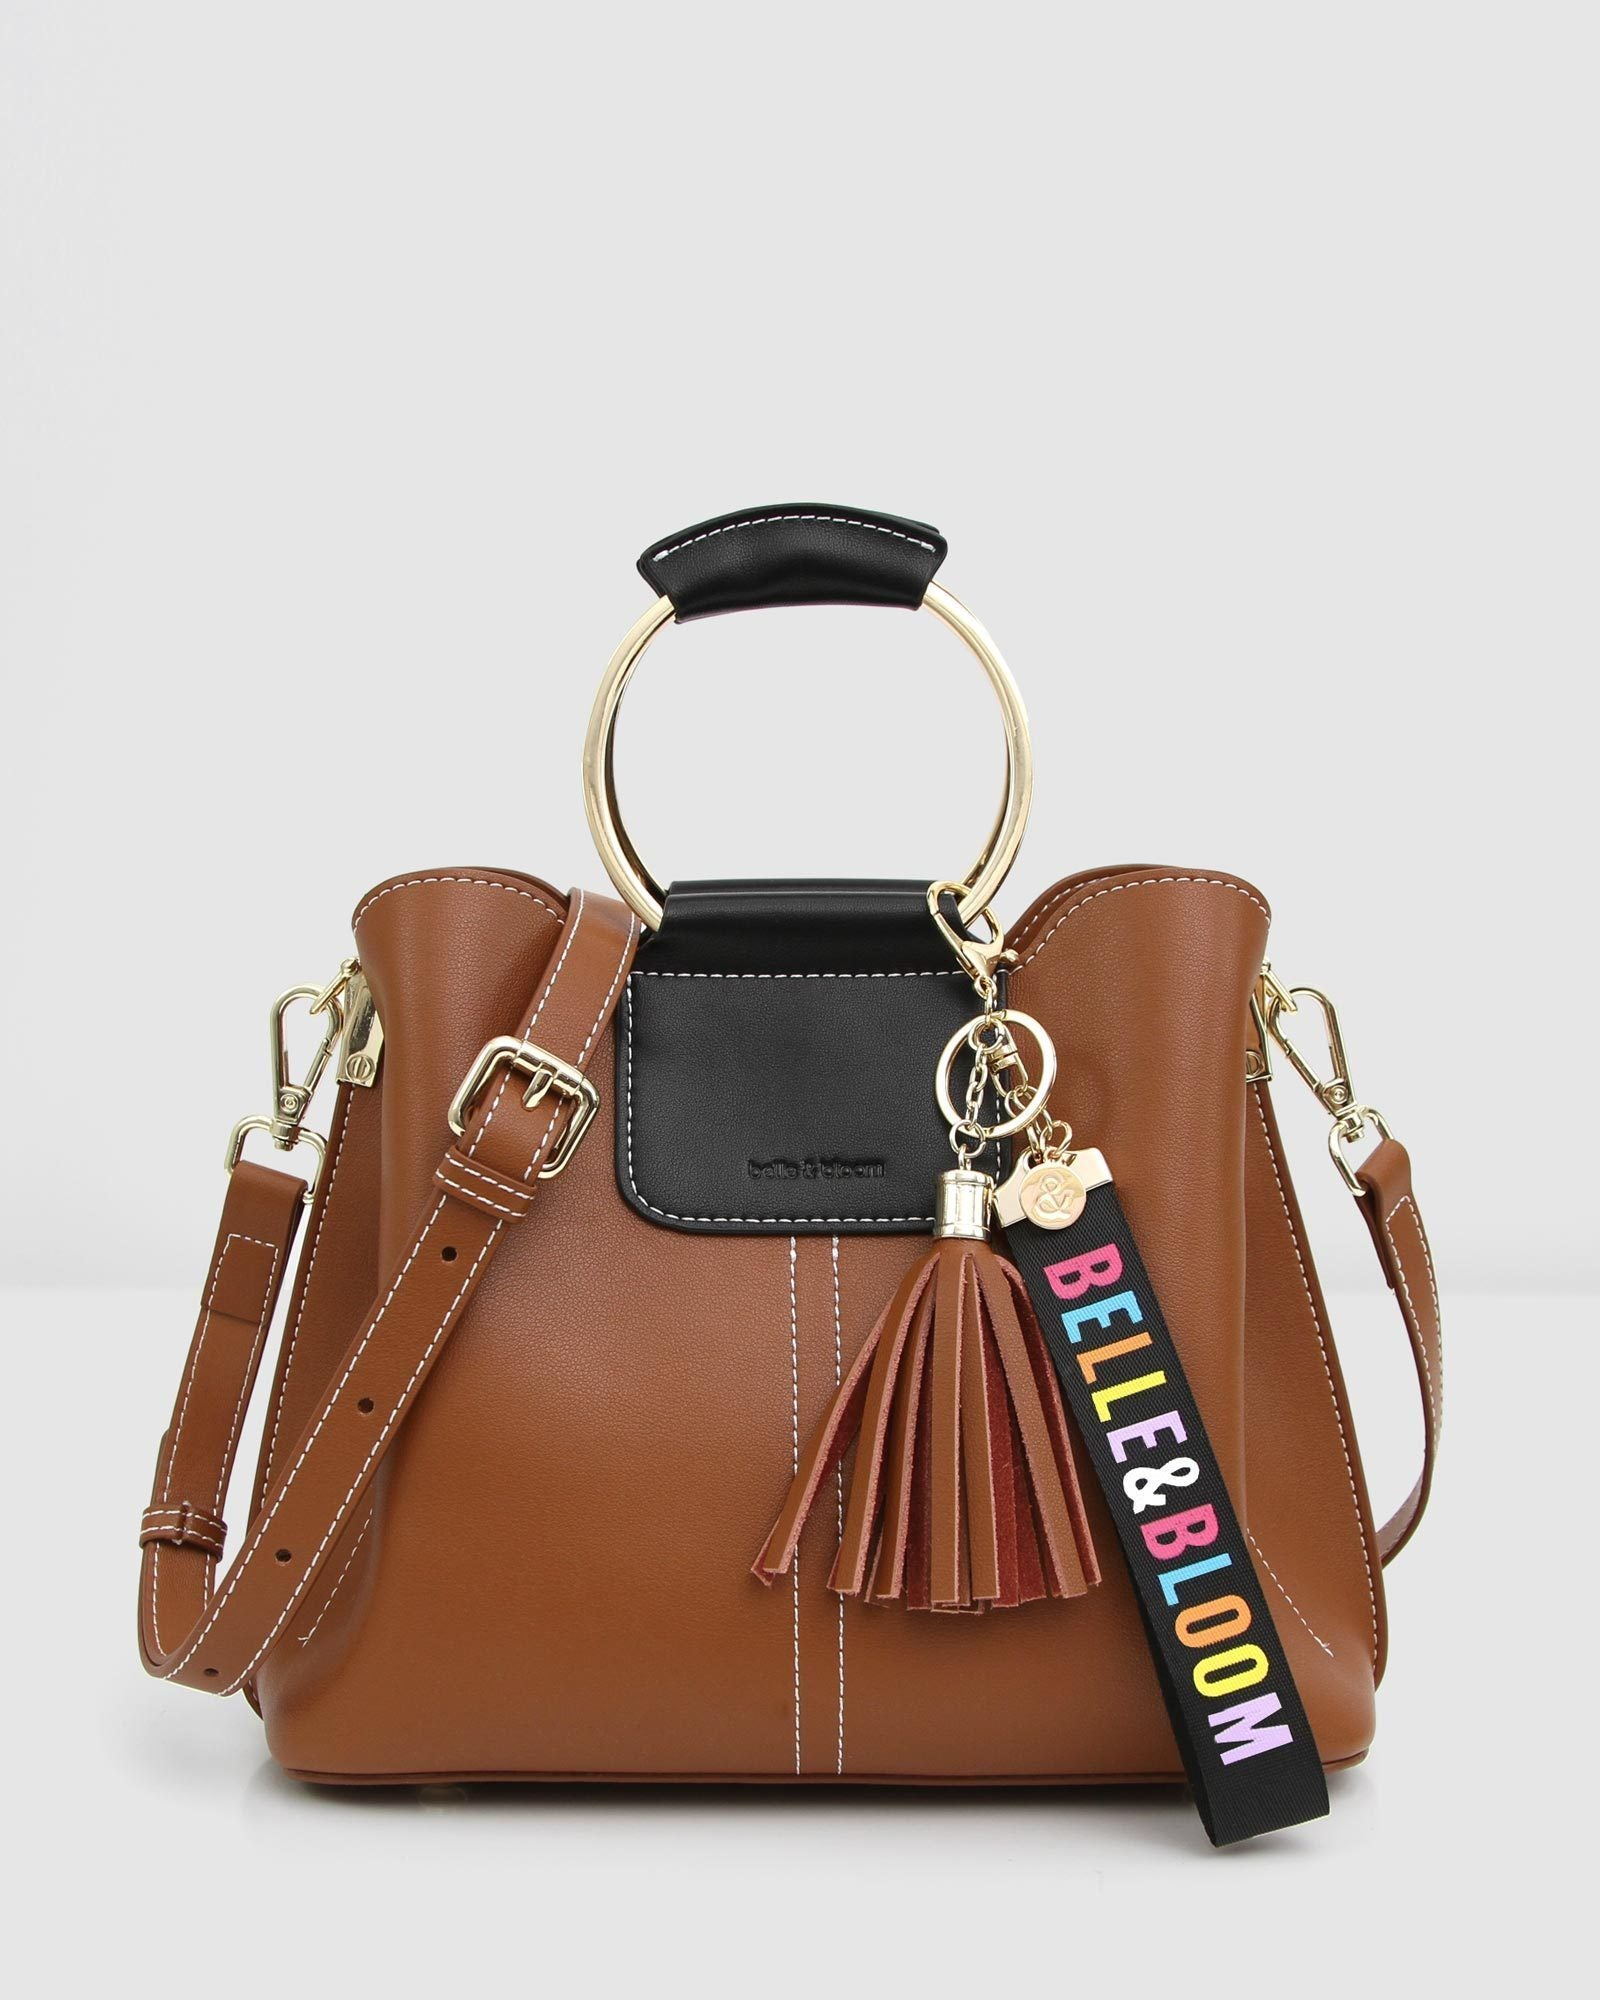 Twilight Leather Cross-Body Bag - Brown / Black